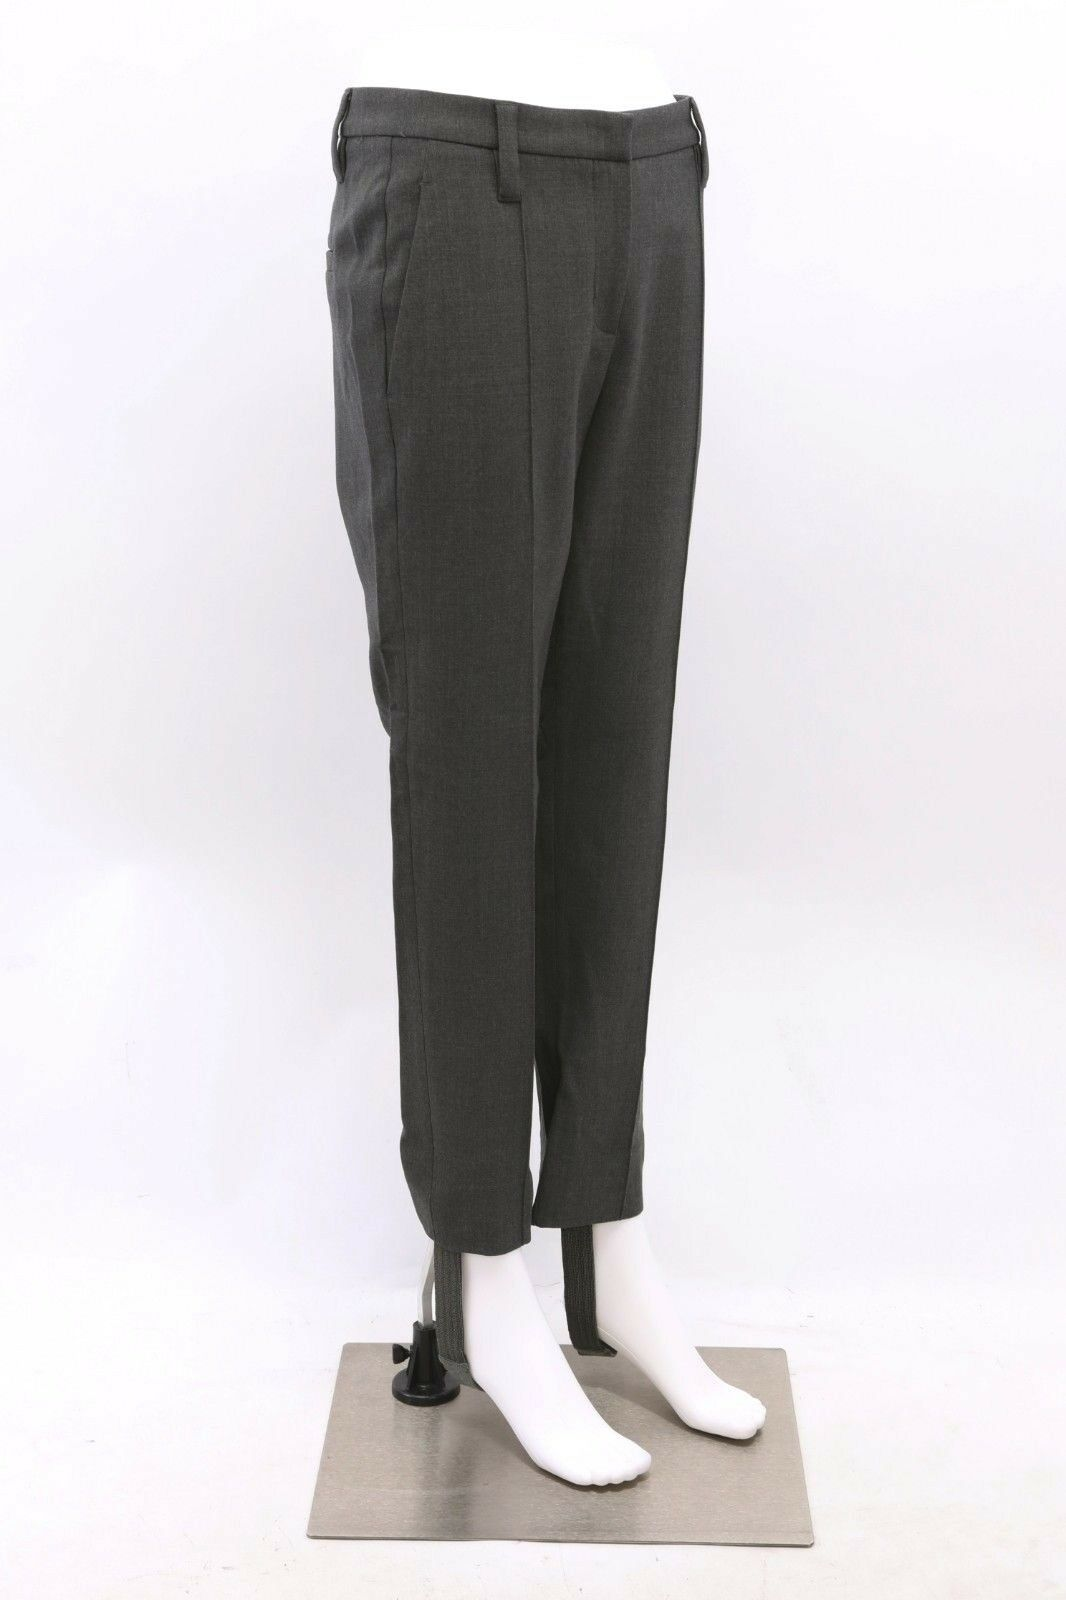 NWT 1775 Brunello Cucinelli Detachable Beaded Stirrup Dress Pants Sz 42 6US A181